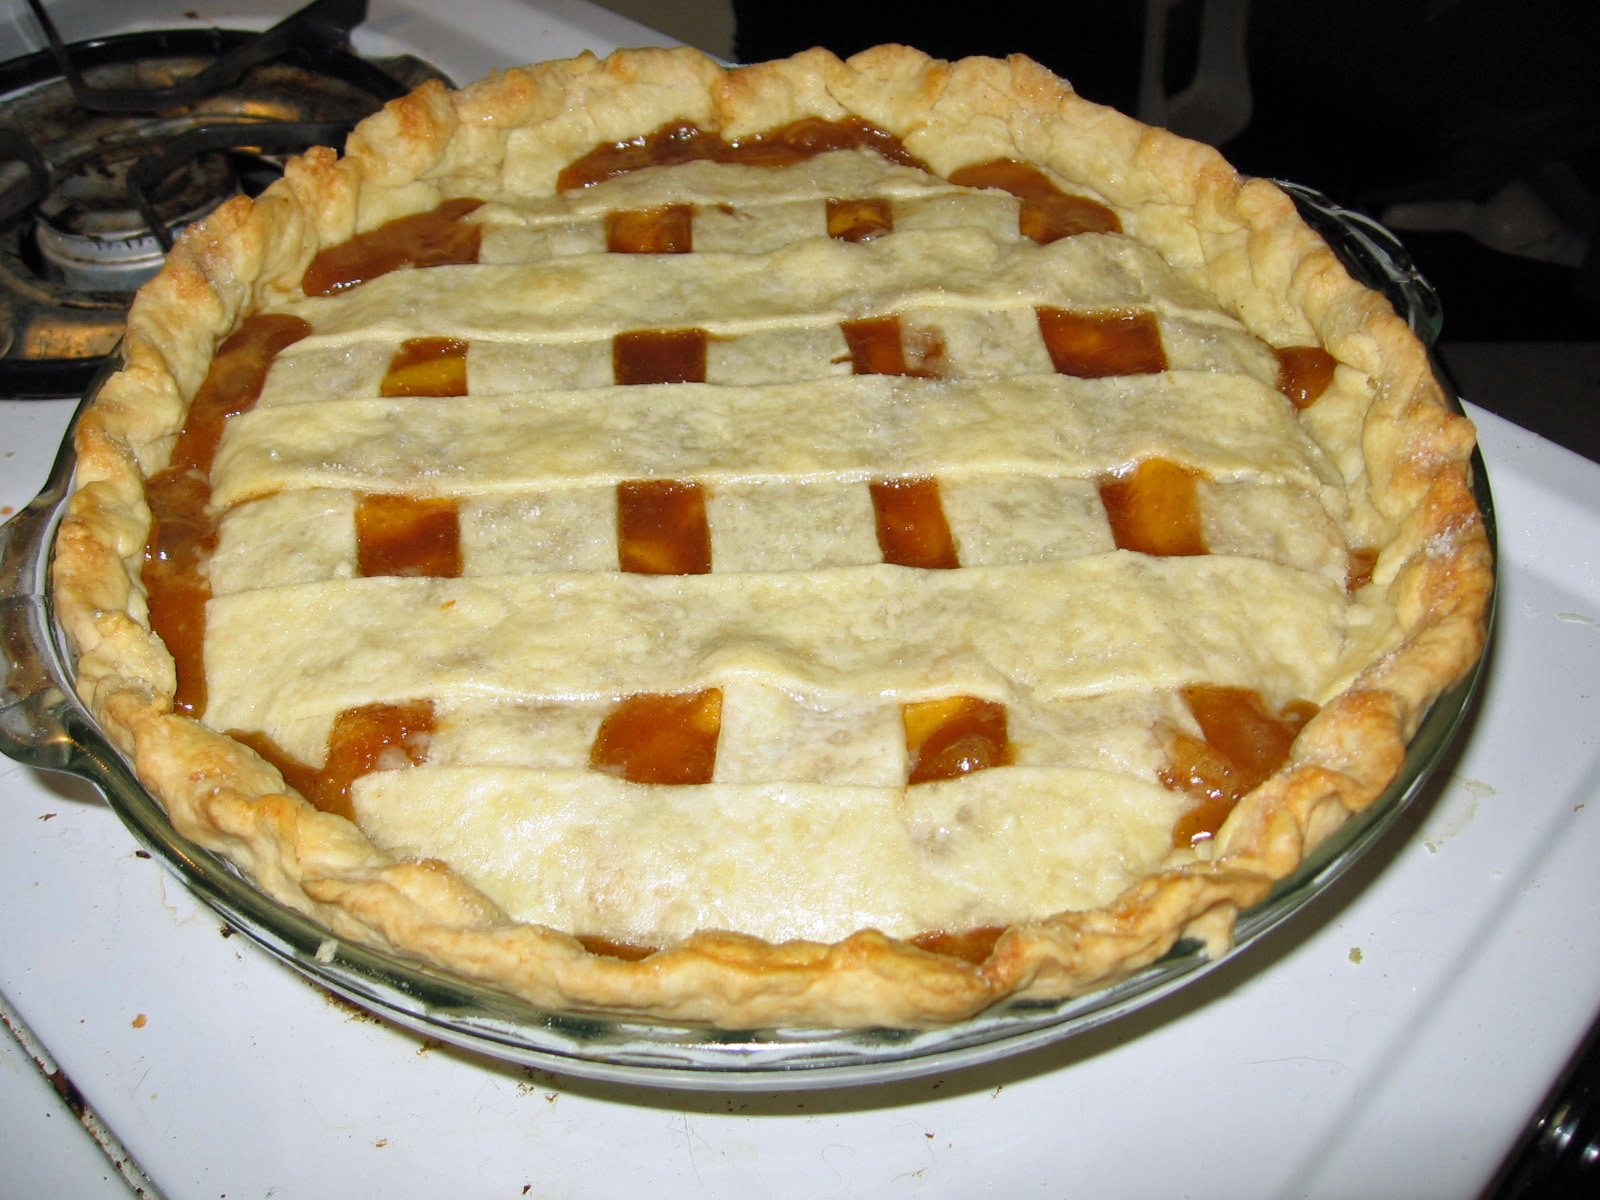 Peach pie | Based on Emeril Lagasse's Lattice top peach cobb ...